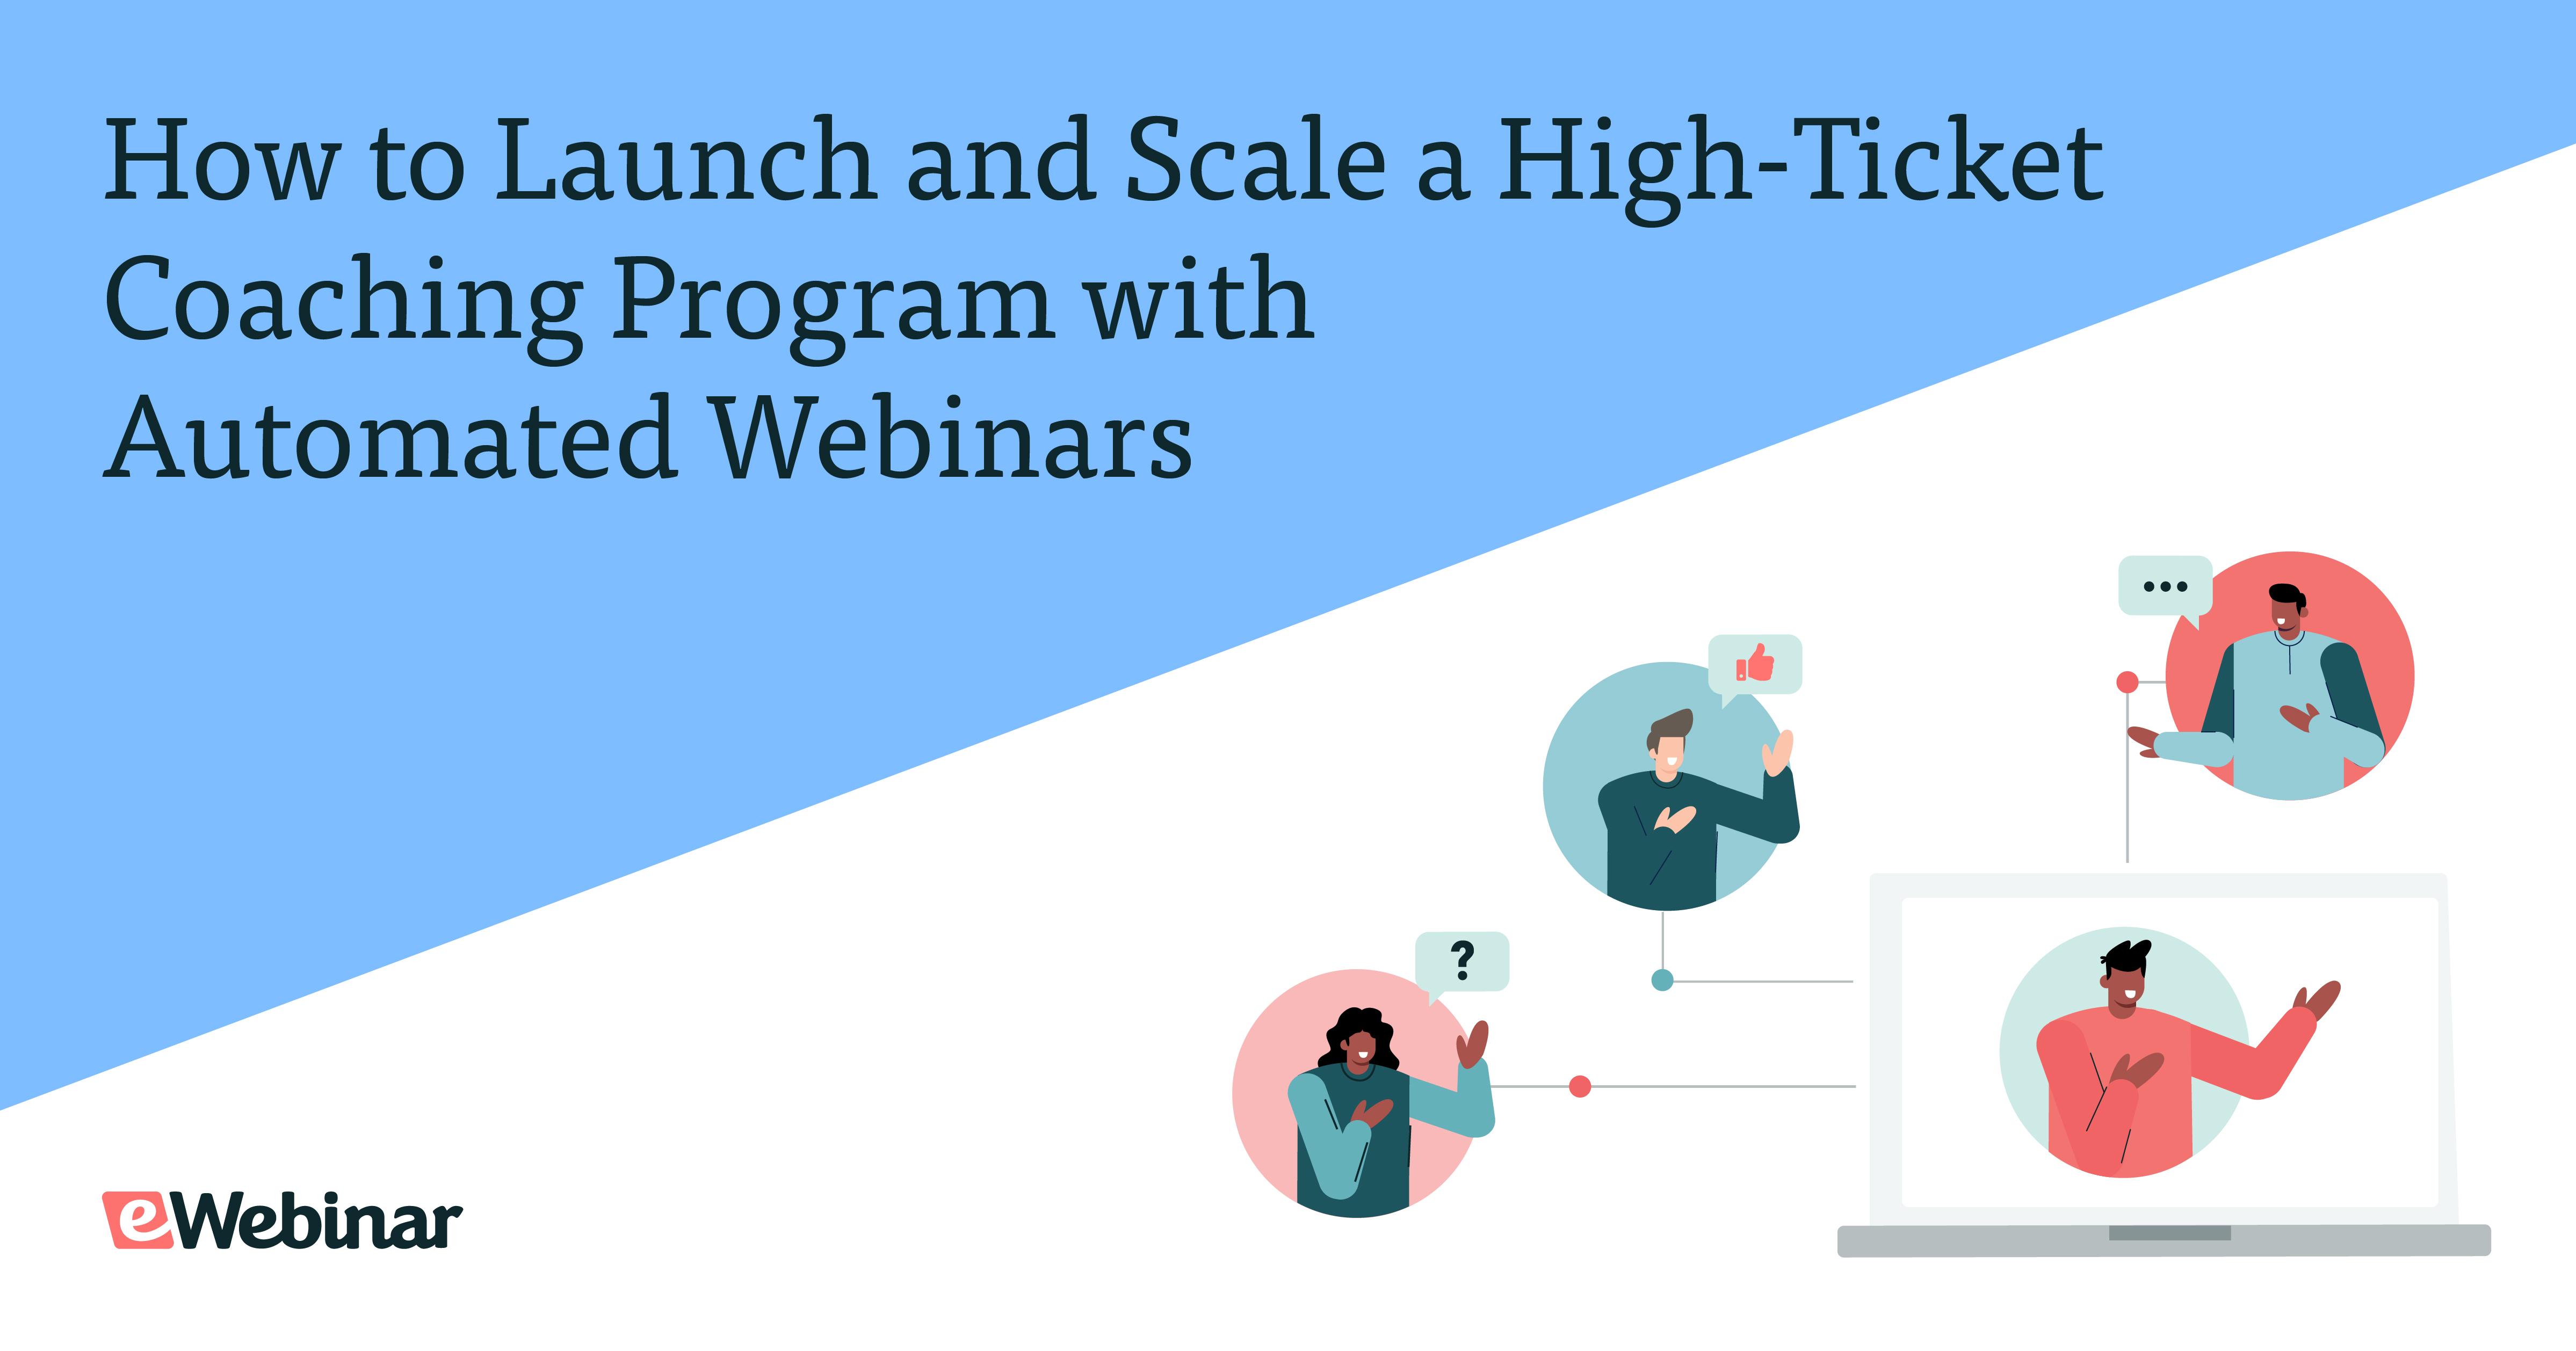 How to Launch and Scale a High-Ticket Coaching Program with Automated Webinars